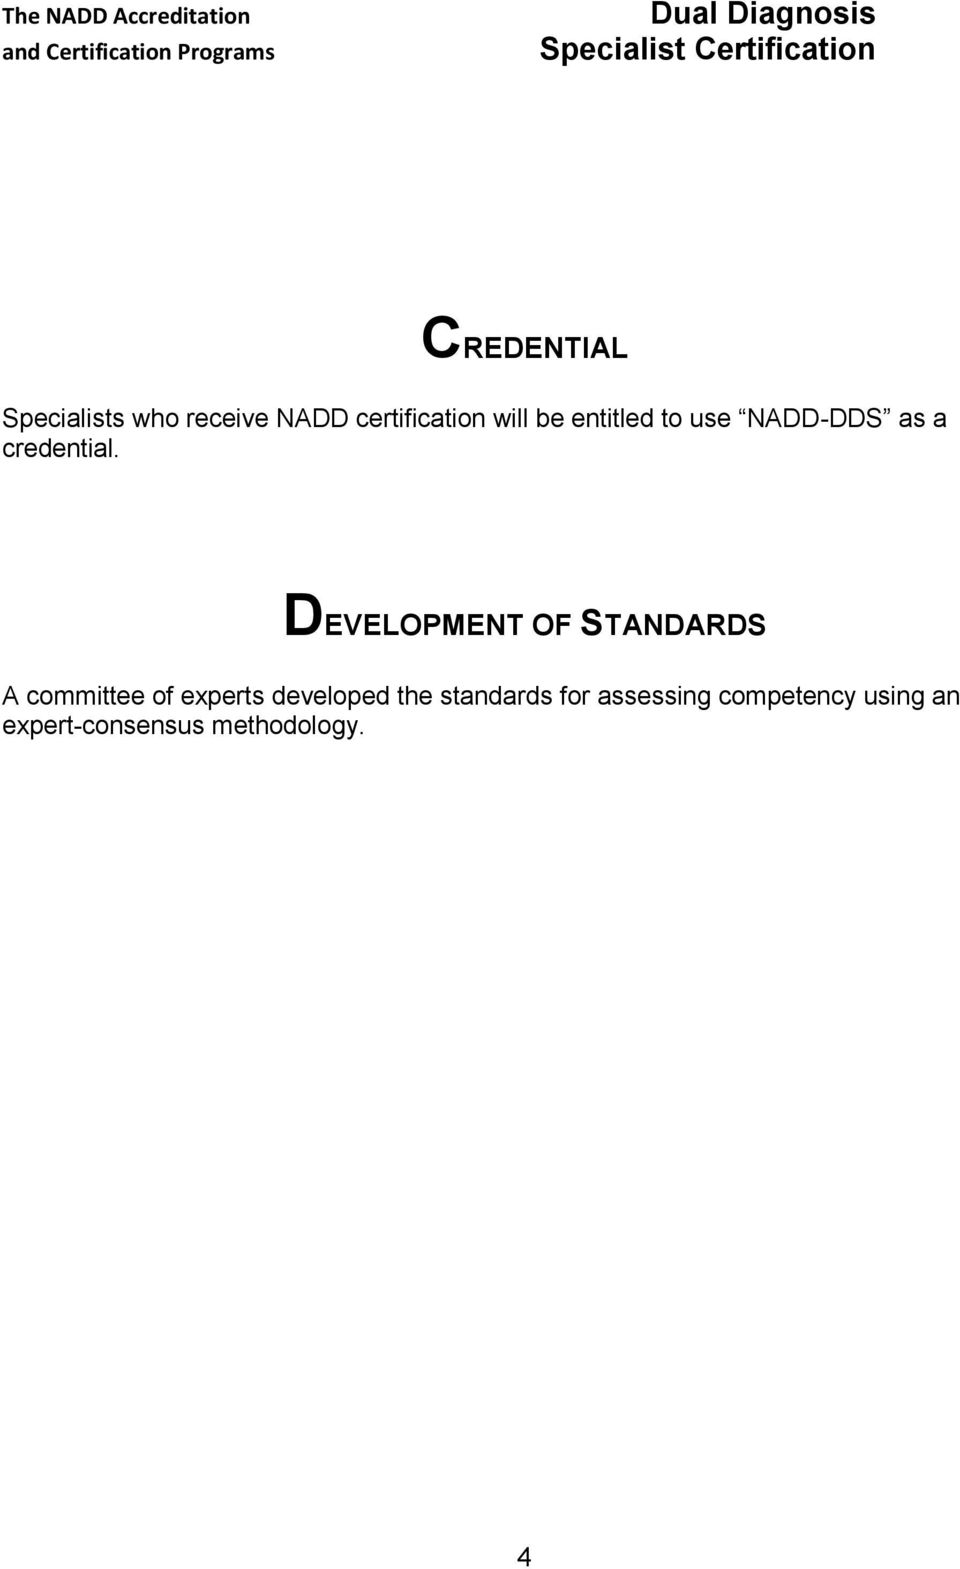 DEVELOPMENT OF STANDARDS A committee of experts developed